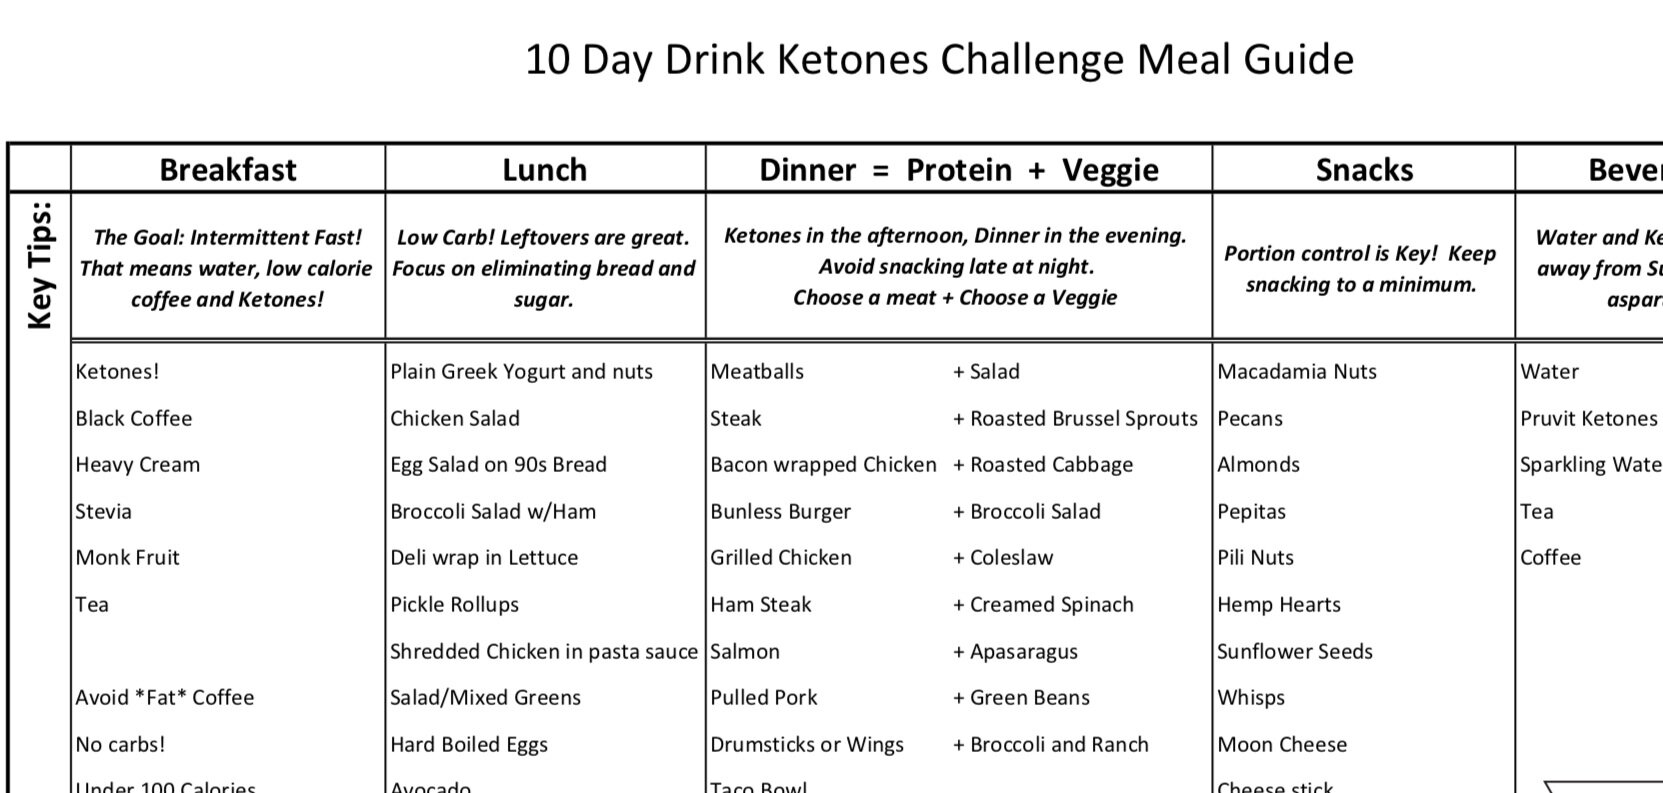 Keto 10 Day Challenge Meal Planning